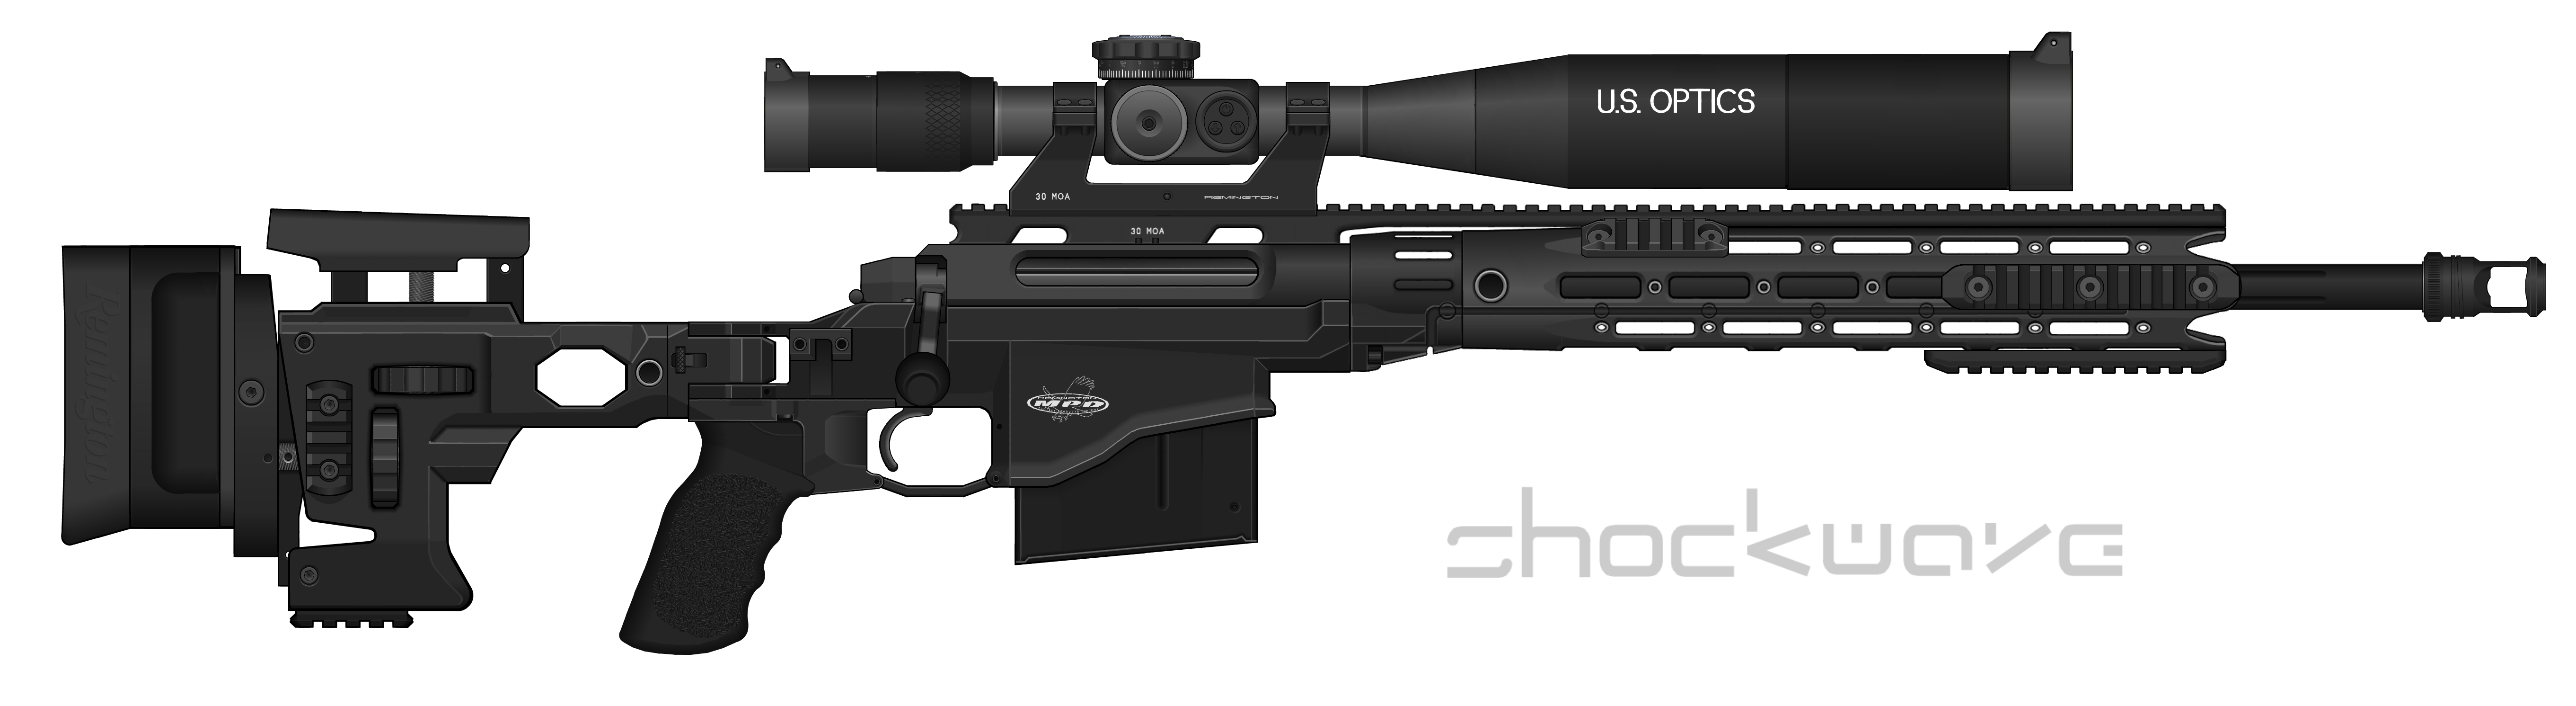 Remington MSR (Modular Sniper Rifle) by Shockwave9001 on ...